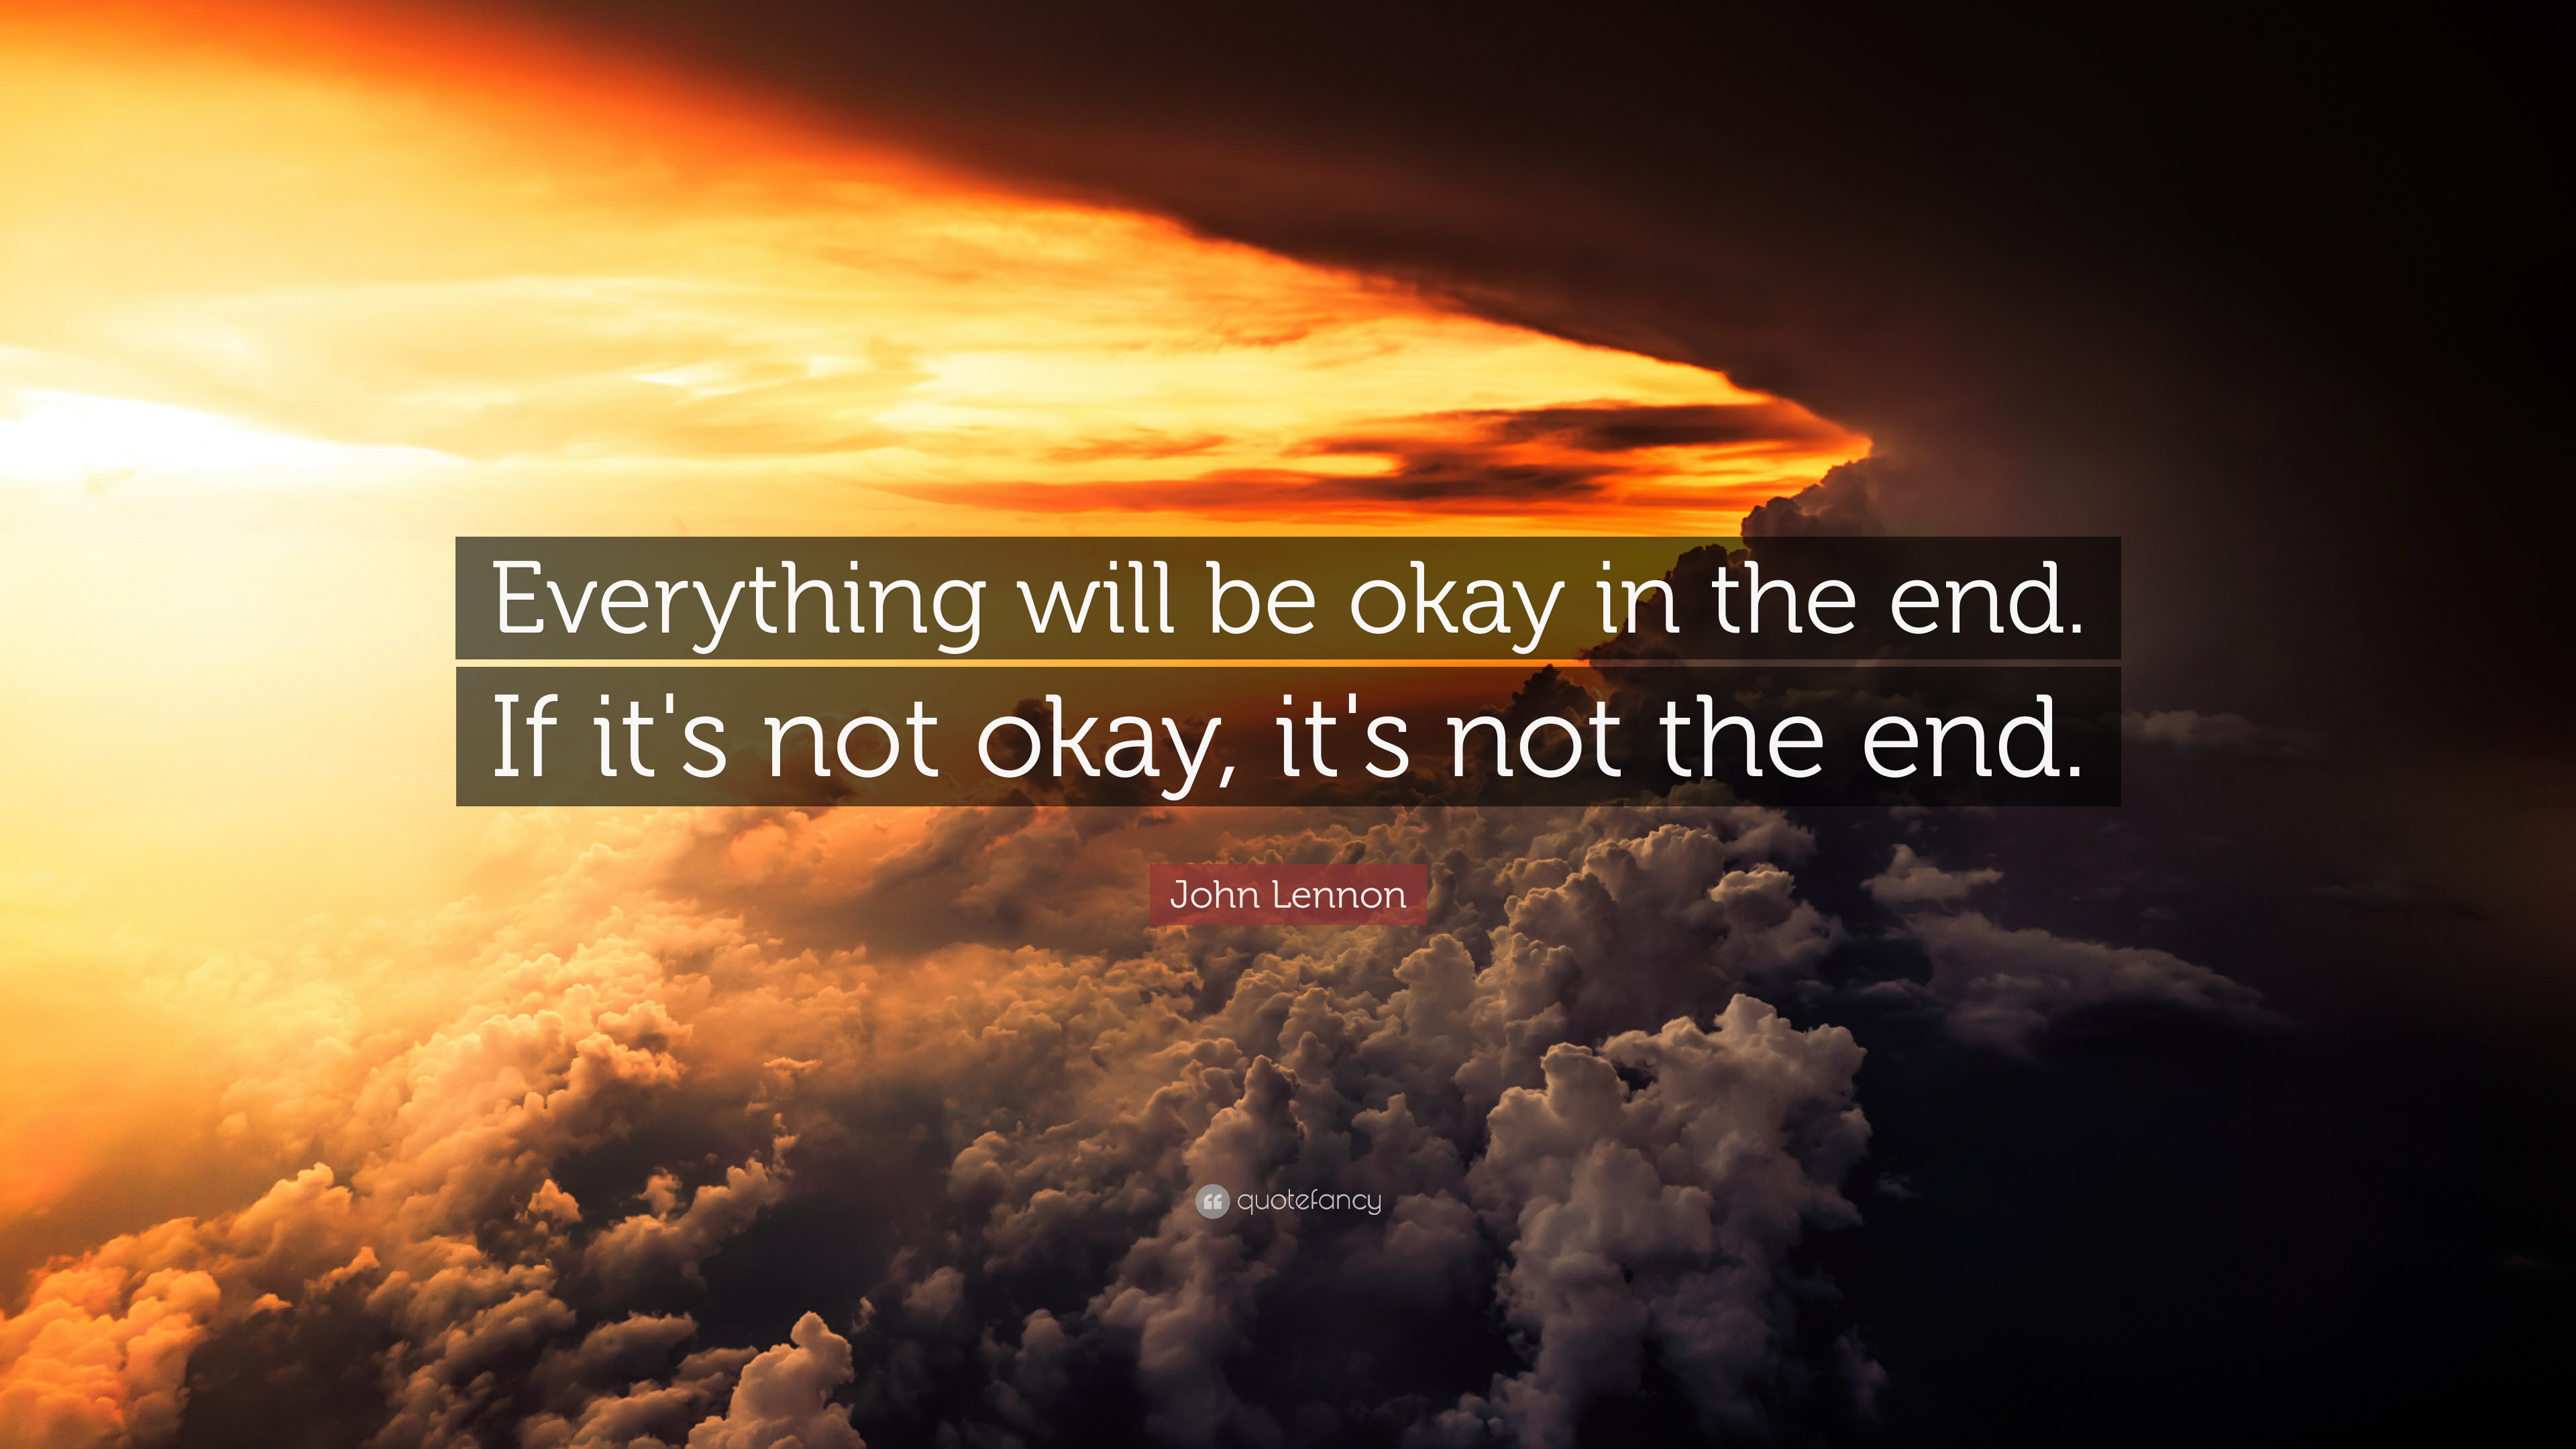 John-Lennon-Quote-Everything-will-be-okay-in-the-end-If-its not ok-its not the end_clouds darkness light